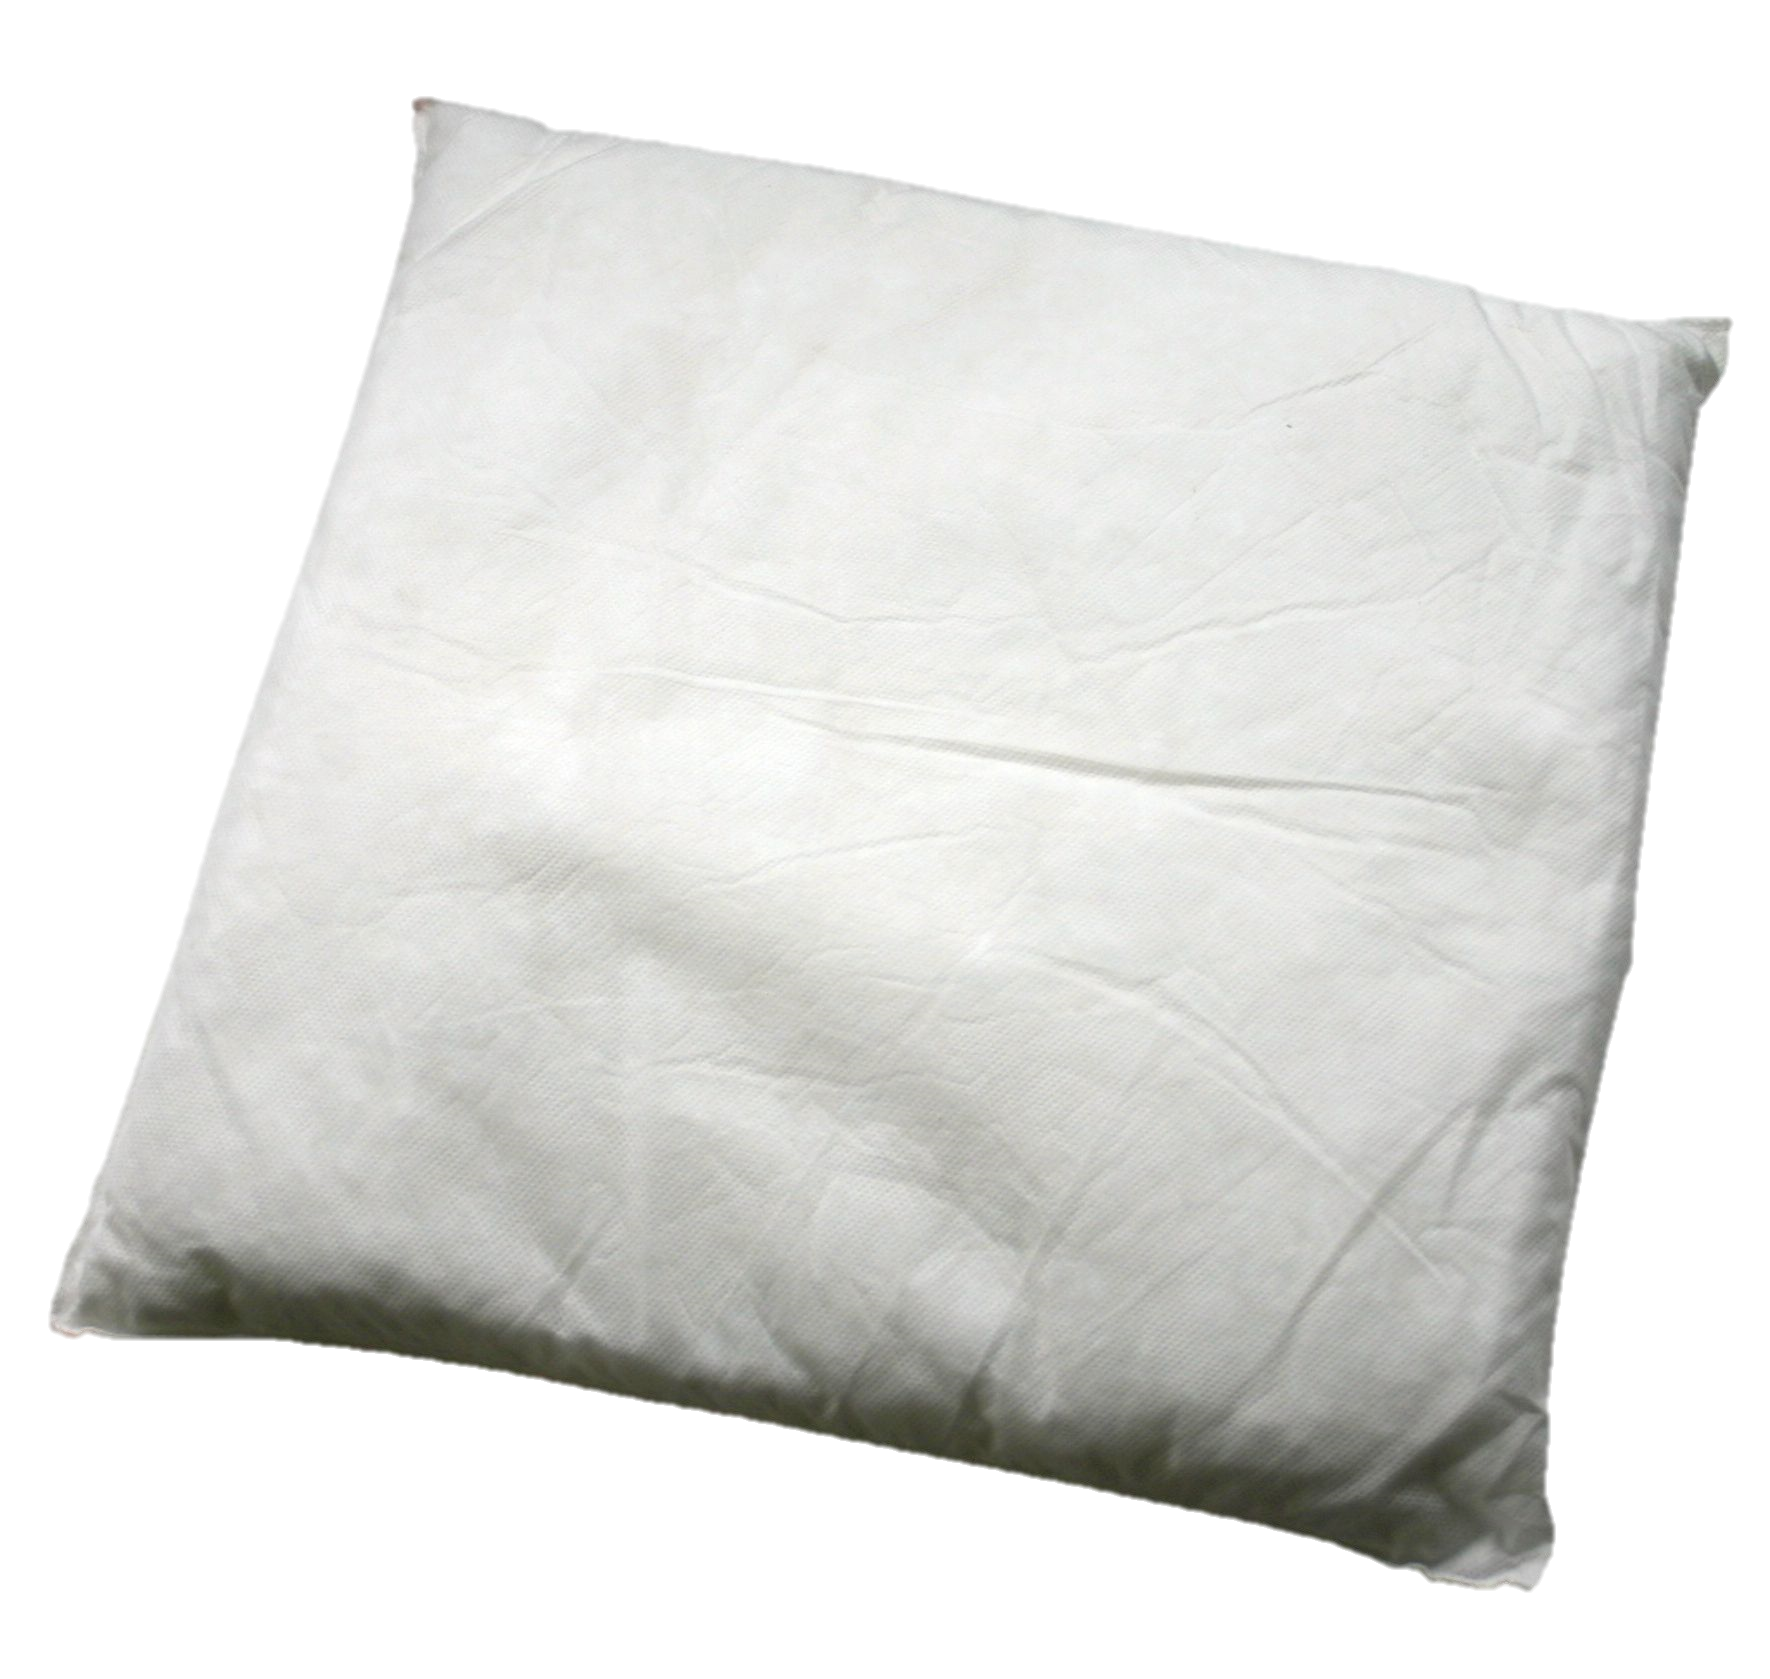 Absorbent pillows-Oil binding agents-Oil binders